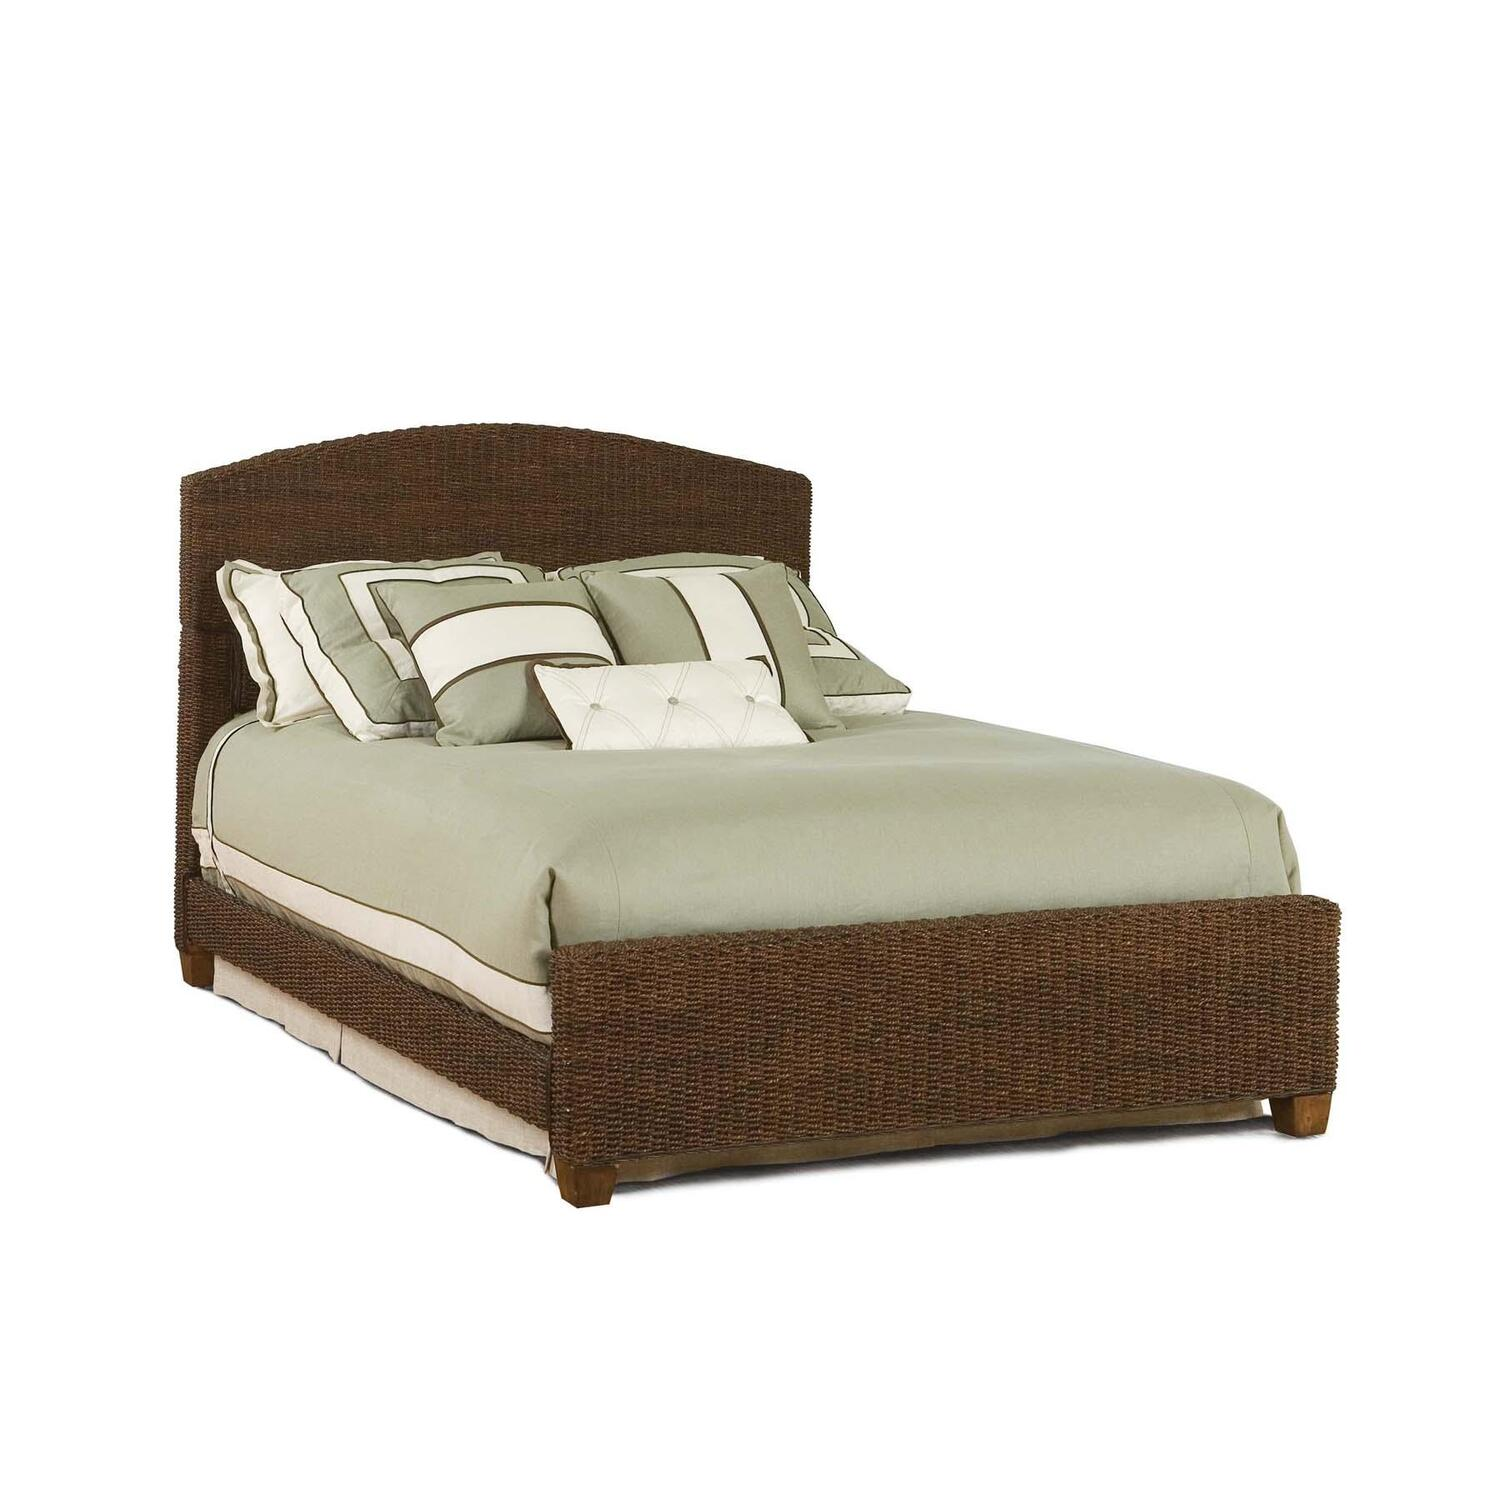 Home Styles Cabana Banana Queen Bed Honey Oak Finish